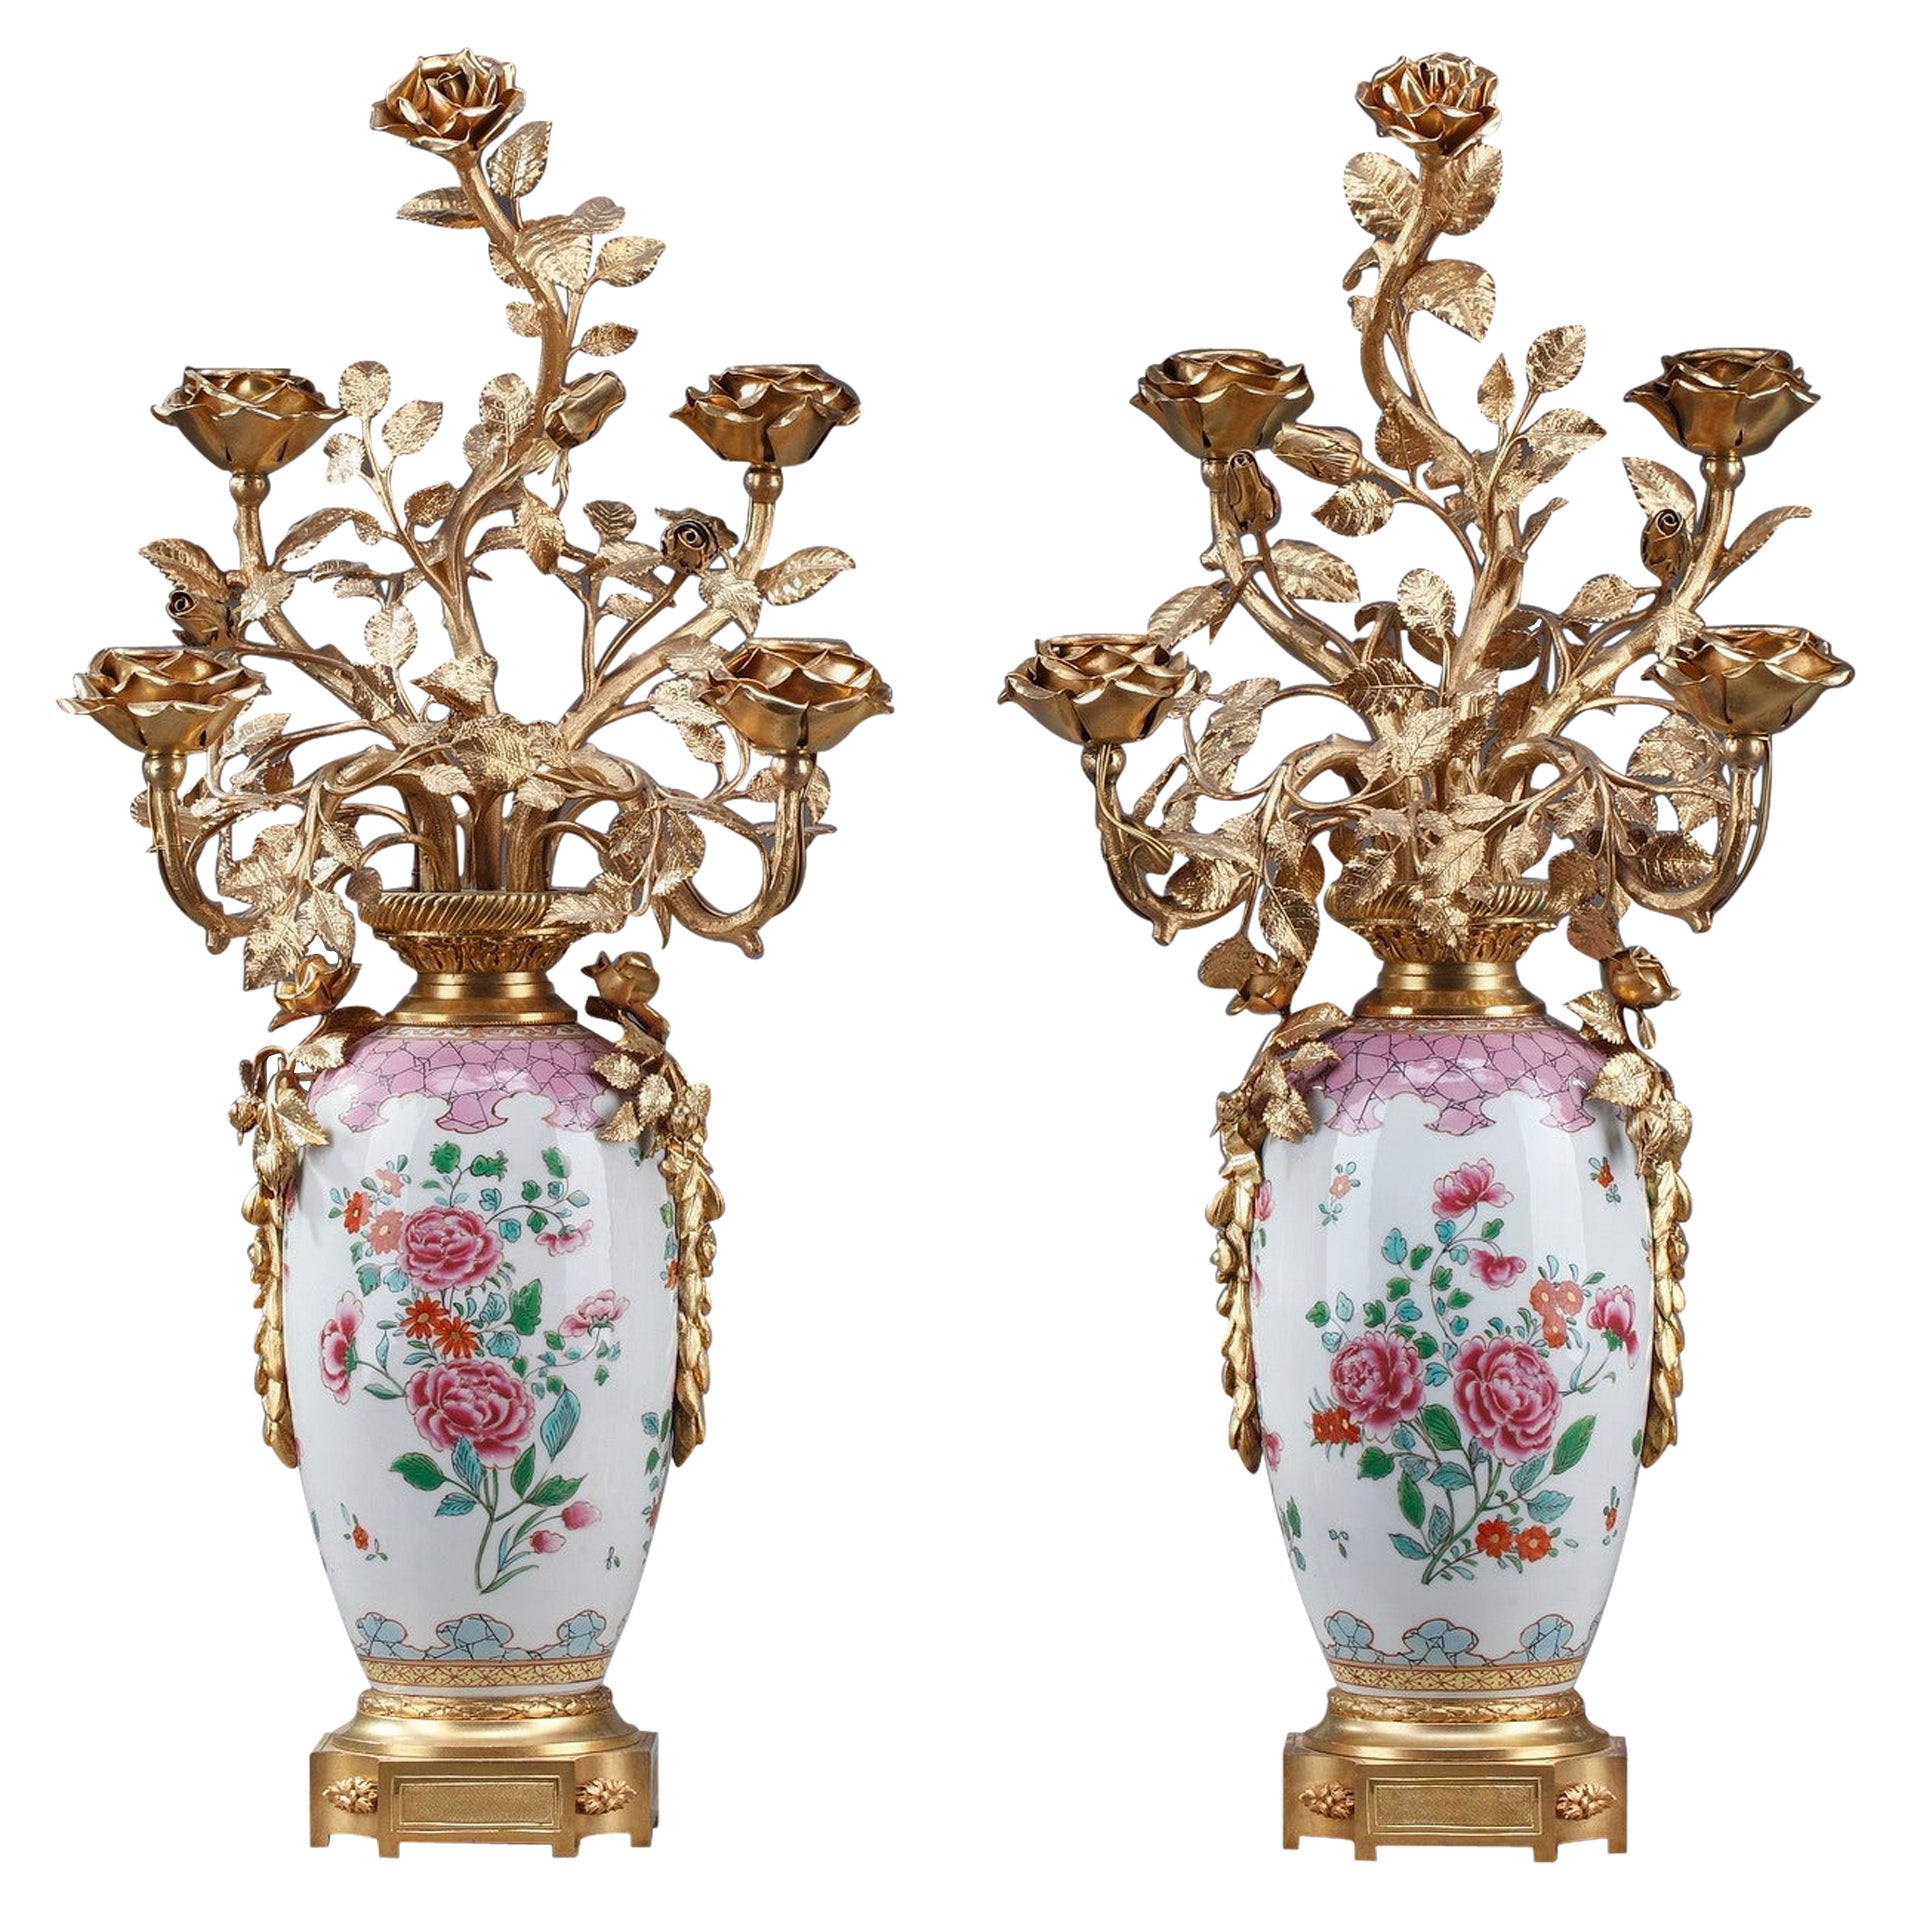 19th Century Vases Mounted as Lamps in Famille Rose Porcelain Taste